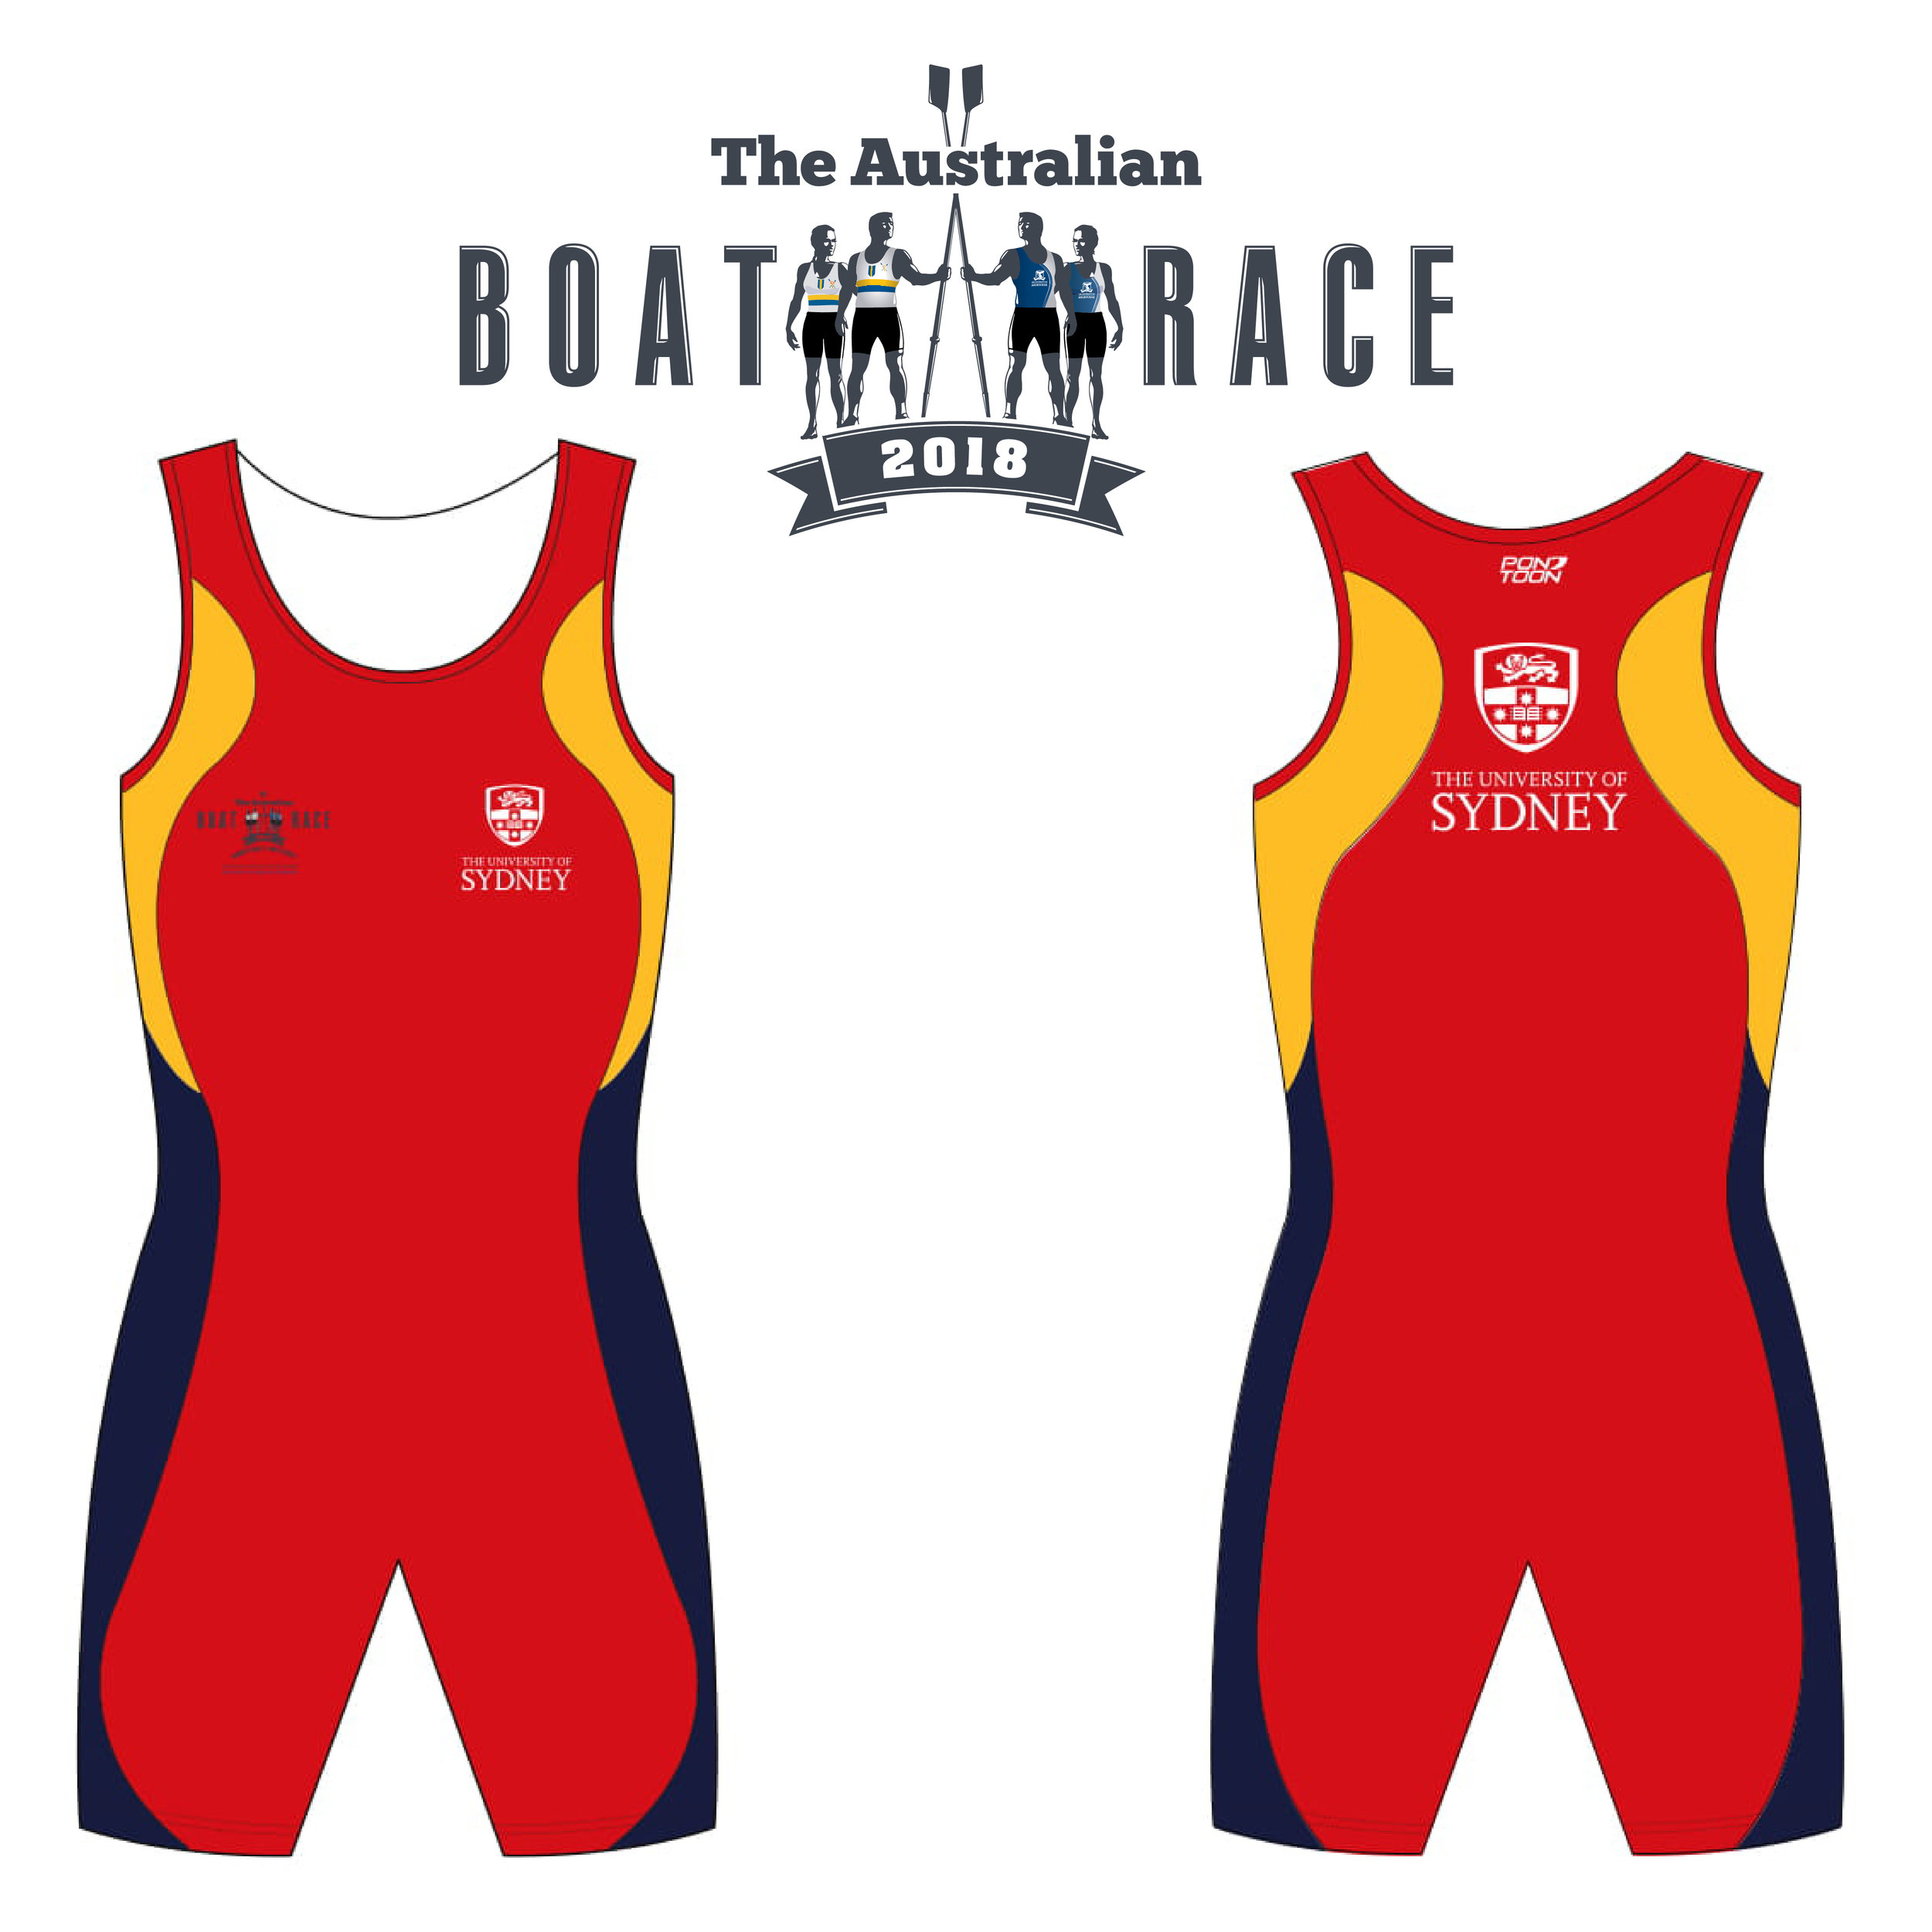 Sydney - The Sydney crew, in a departure from tradition, will not wear the traditional blue and gold on white uniforms. Instead, the 2018 uniform will be based on Sydney University's main brand colour an ochre red which reflects the Australian landscape. This colour forms the main front and back panels with the side panel being in gold for the top part of the suit and blue for the bottom. The shield of the university with the traditional lion and book of learning with cross and stars is featured in large size on the back and in small size on front left pocket with the logo of The Australian Boat race on the right pocket.